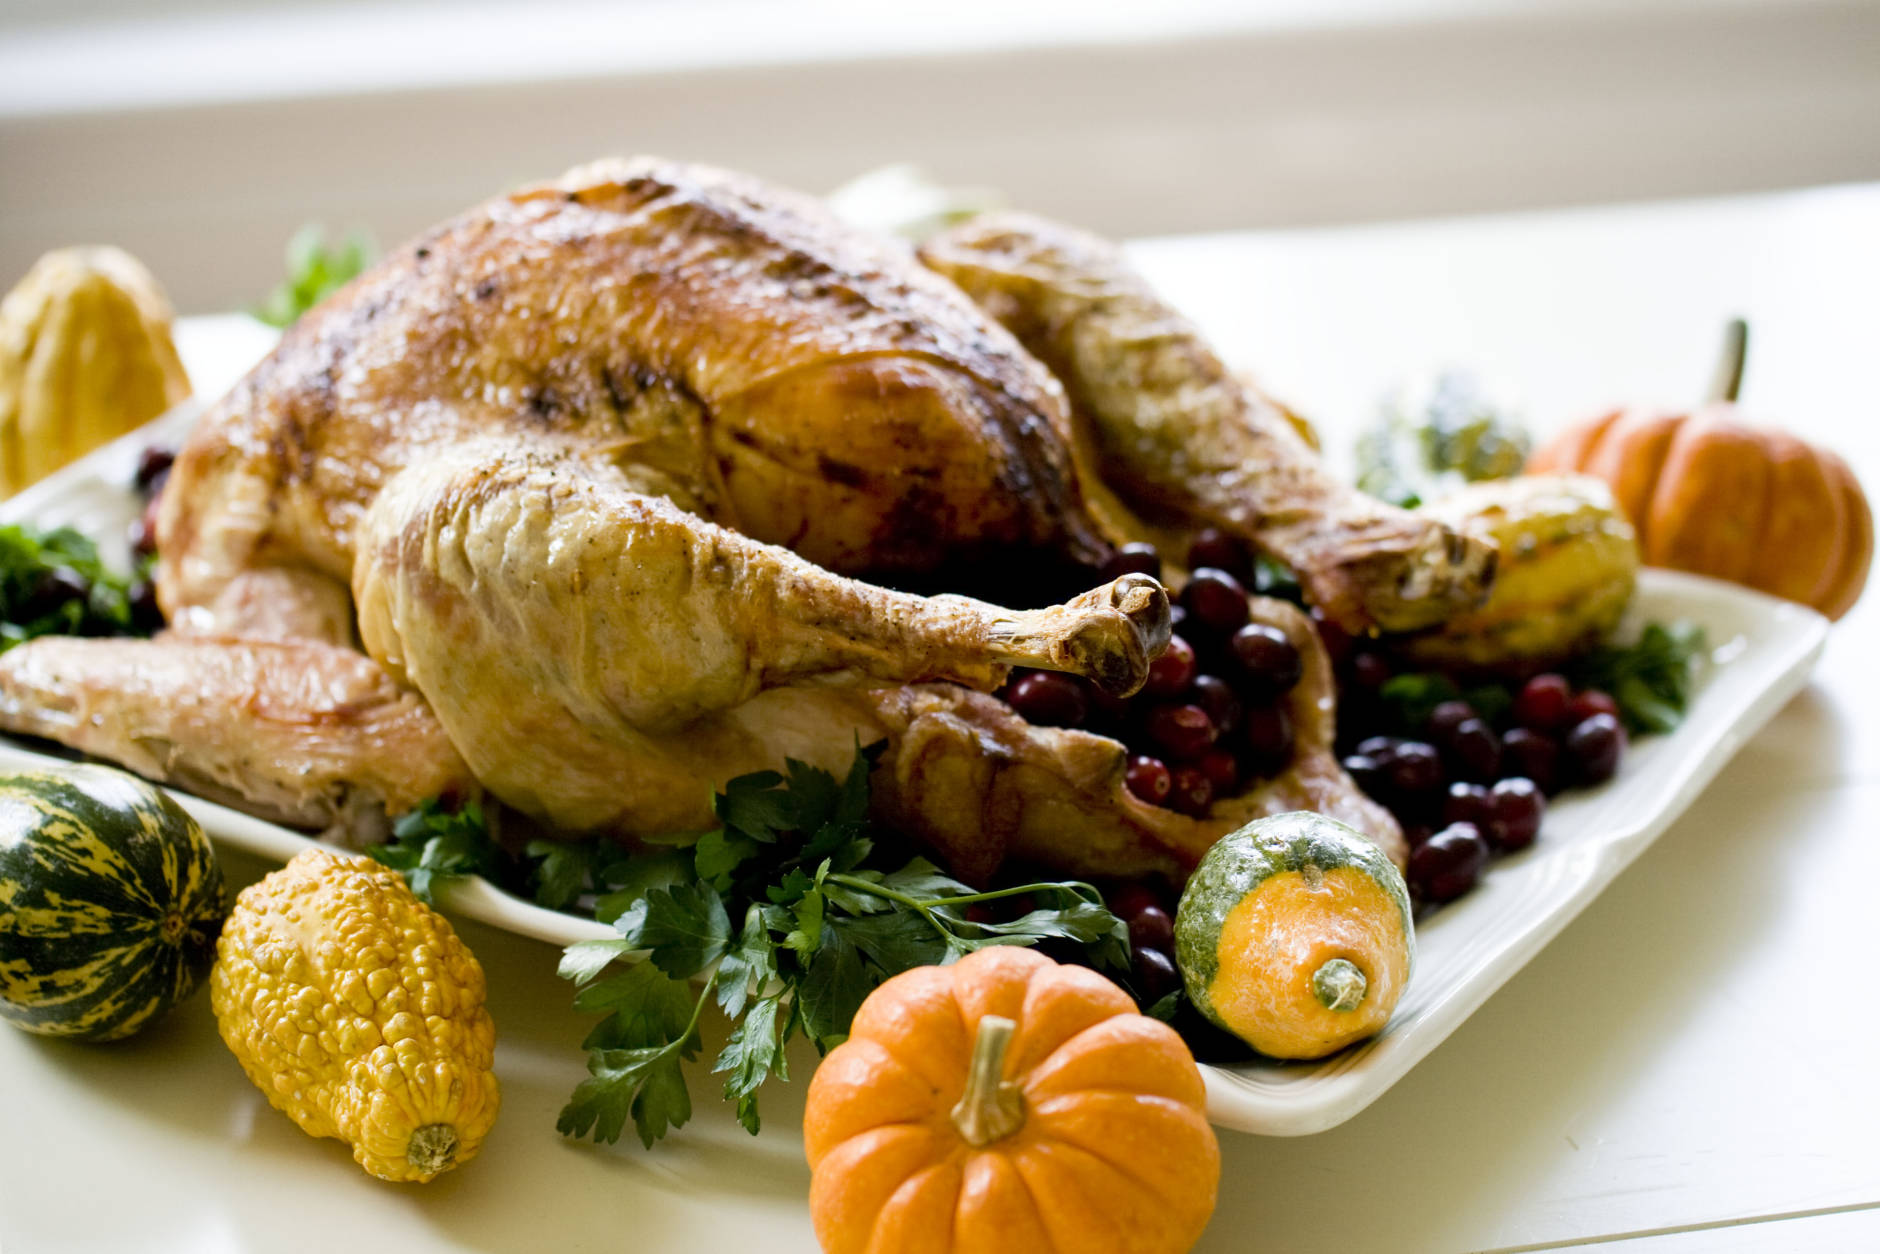 """This Oct. 21, 2013 photo shows a """"back to basics"""" turkey in Concord, N.H. The recipe is so basic, it calls for just four ingredients. (AP Photo/Matthew Mead)"""